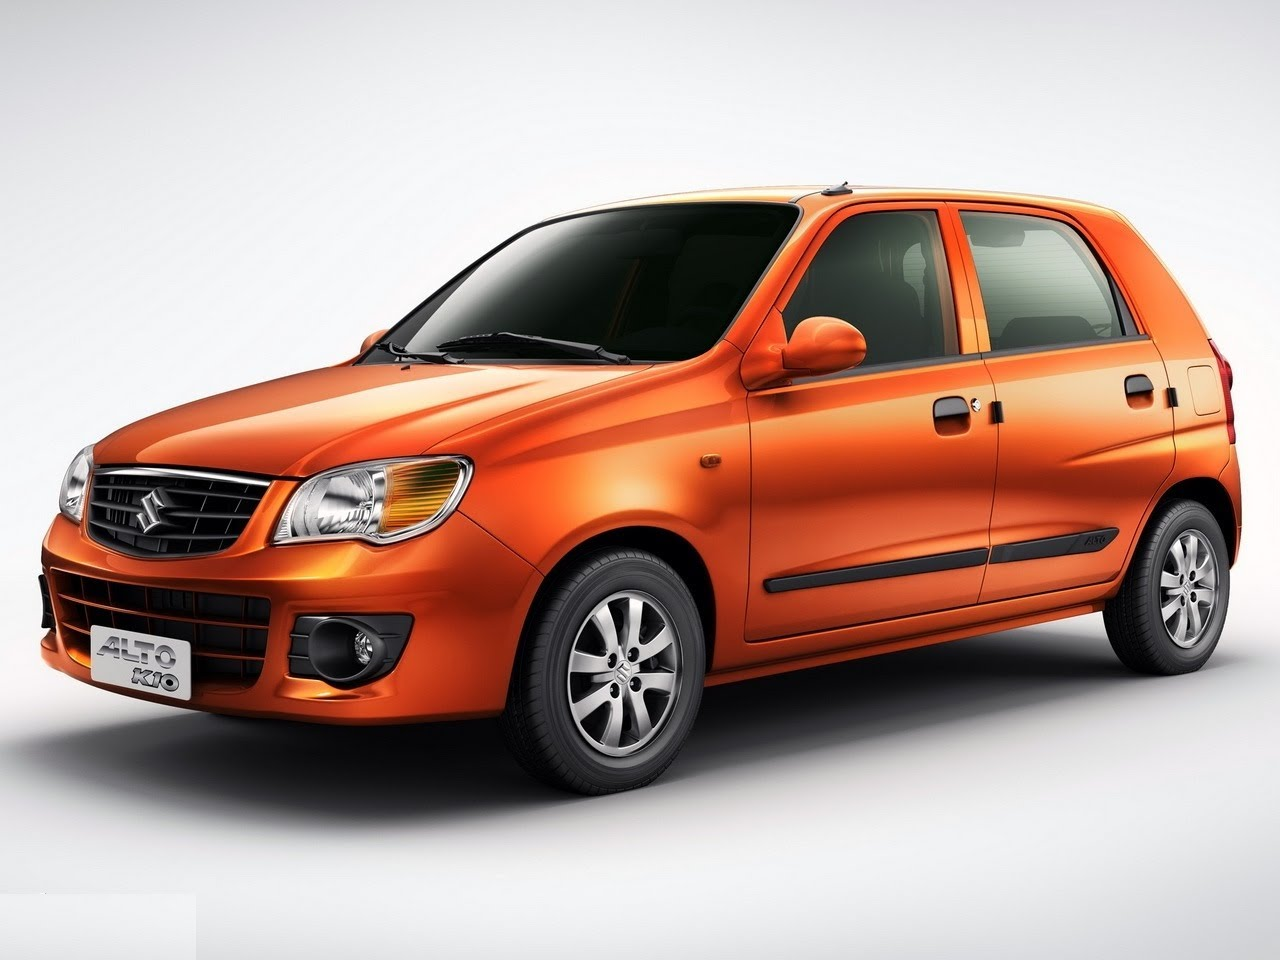 maruti alto wallpaper